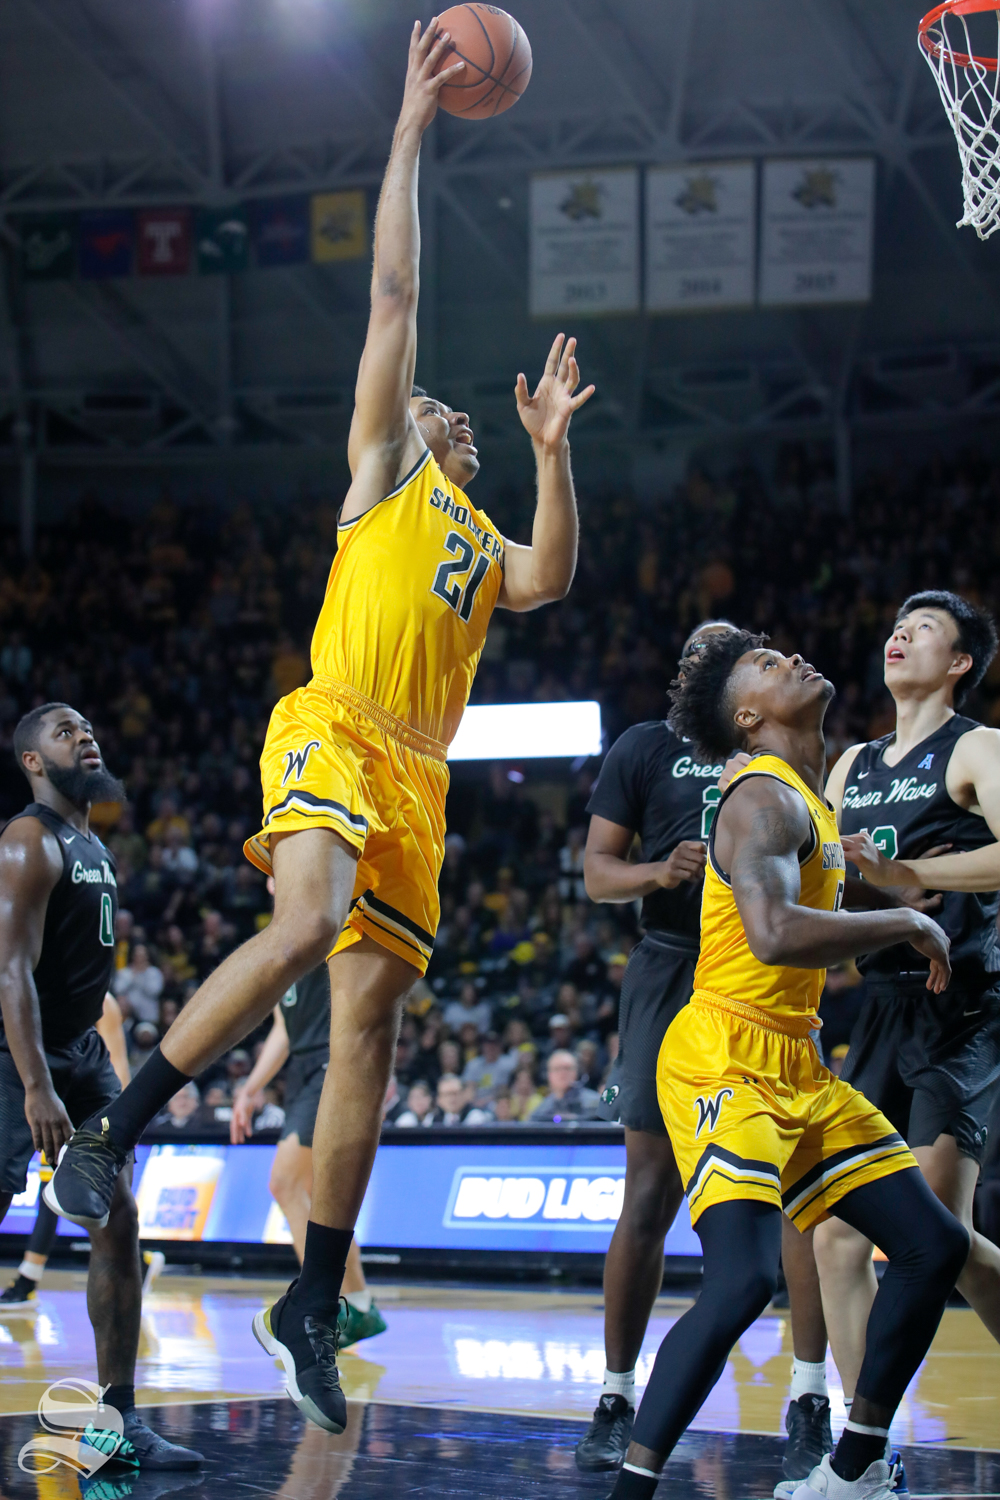 Wichita+State+forward+Jaime+Echenique+reaches+up+for+a+basket+during+the+game+against+Tulane+on+Feb.+9%2C+2019+at+Charles+Koch+Arena.+%28Photo+by+Joseph+Barringhaus%2FThe+Sunflower%29.